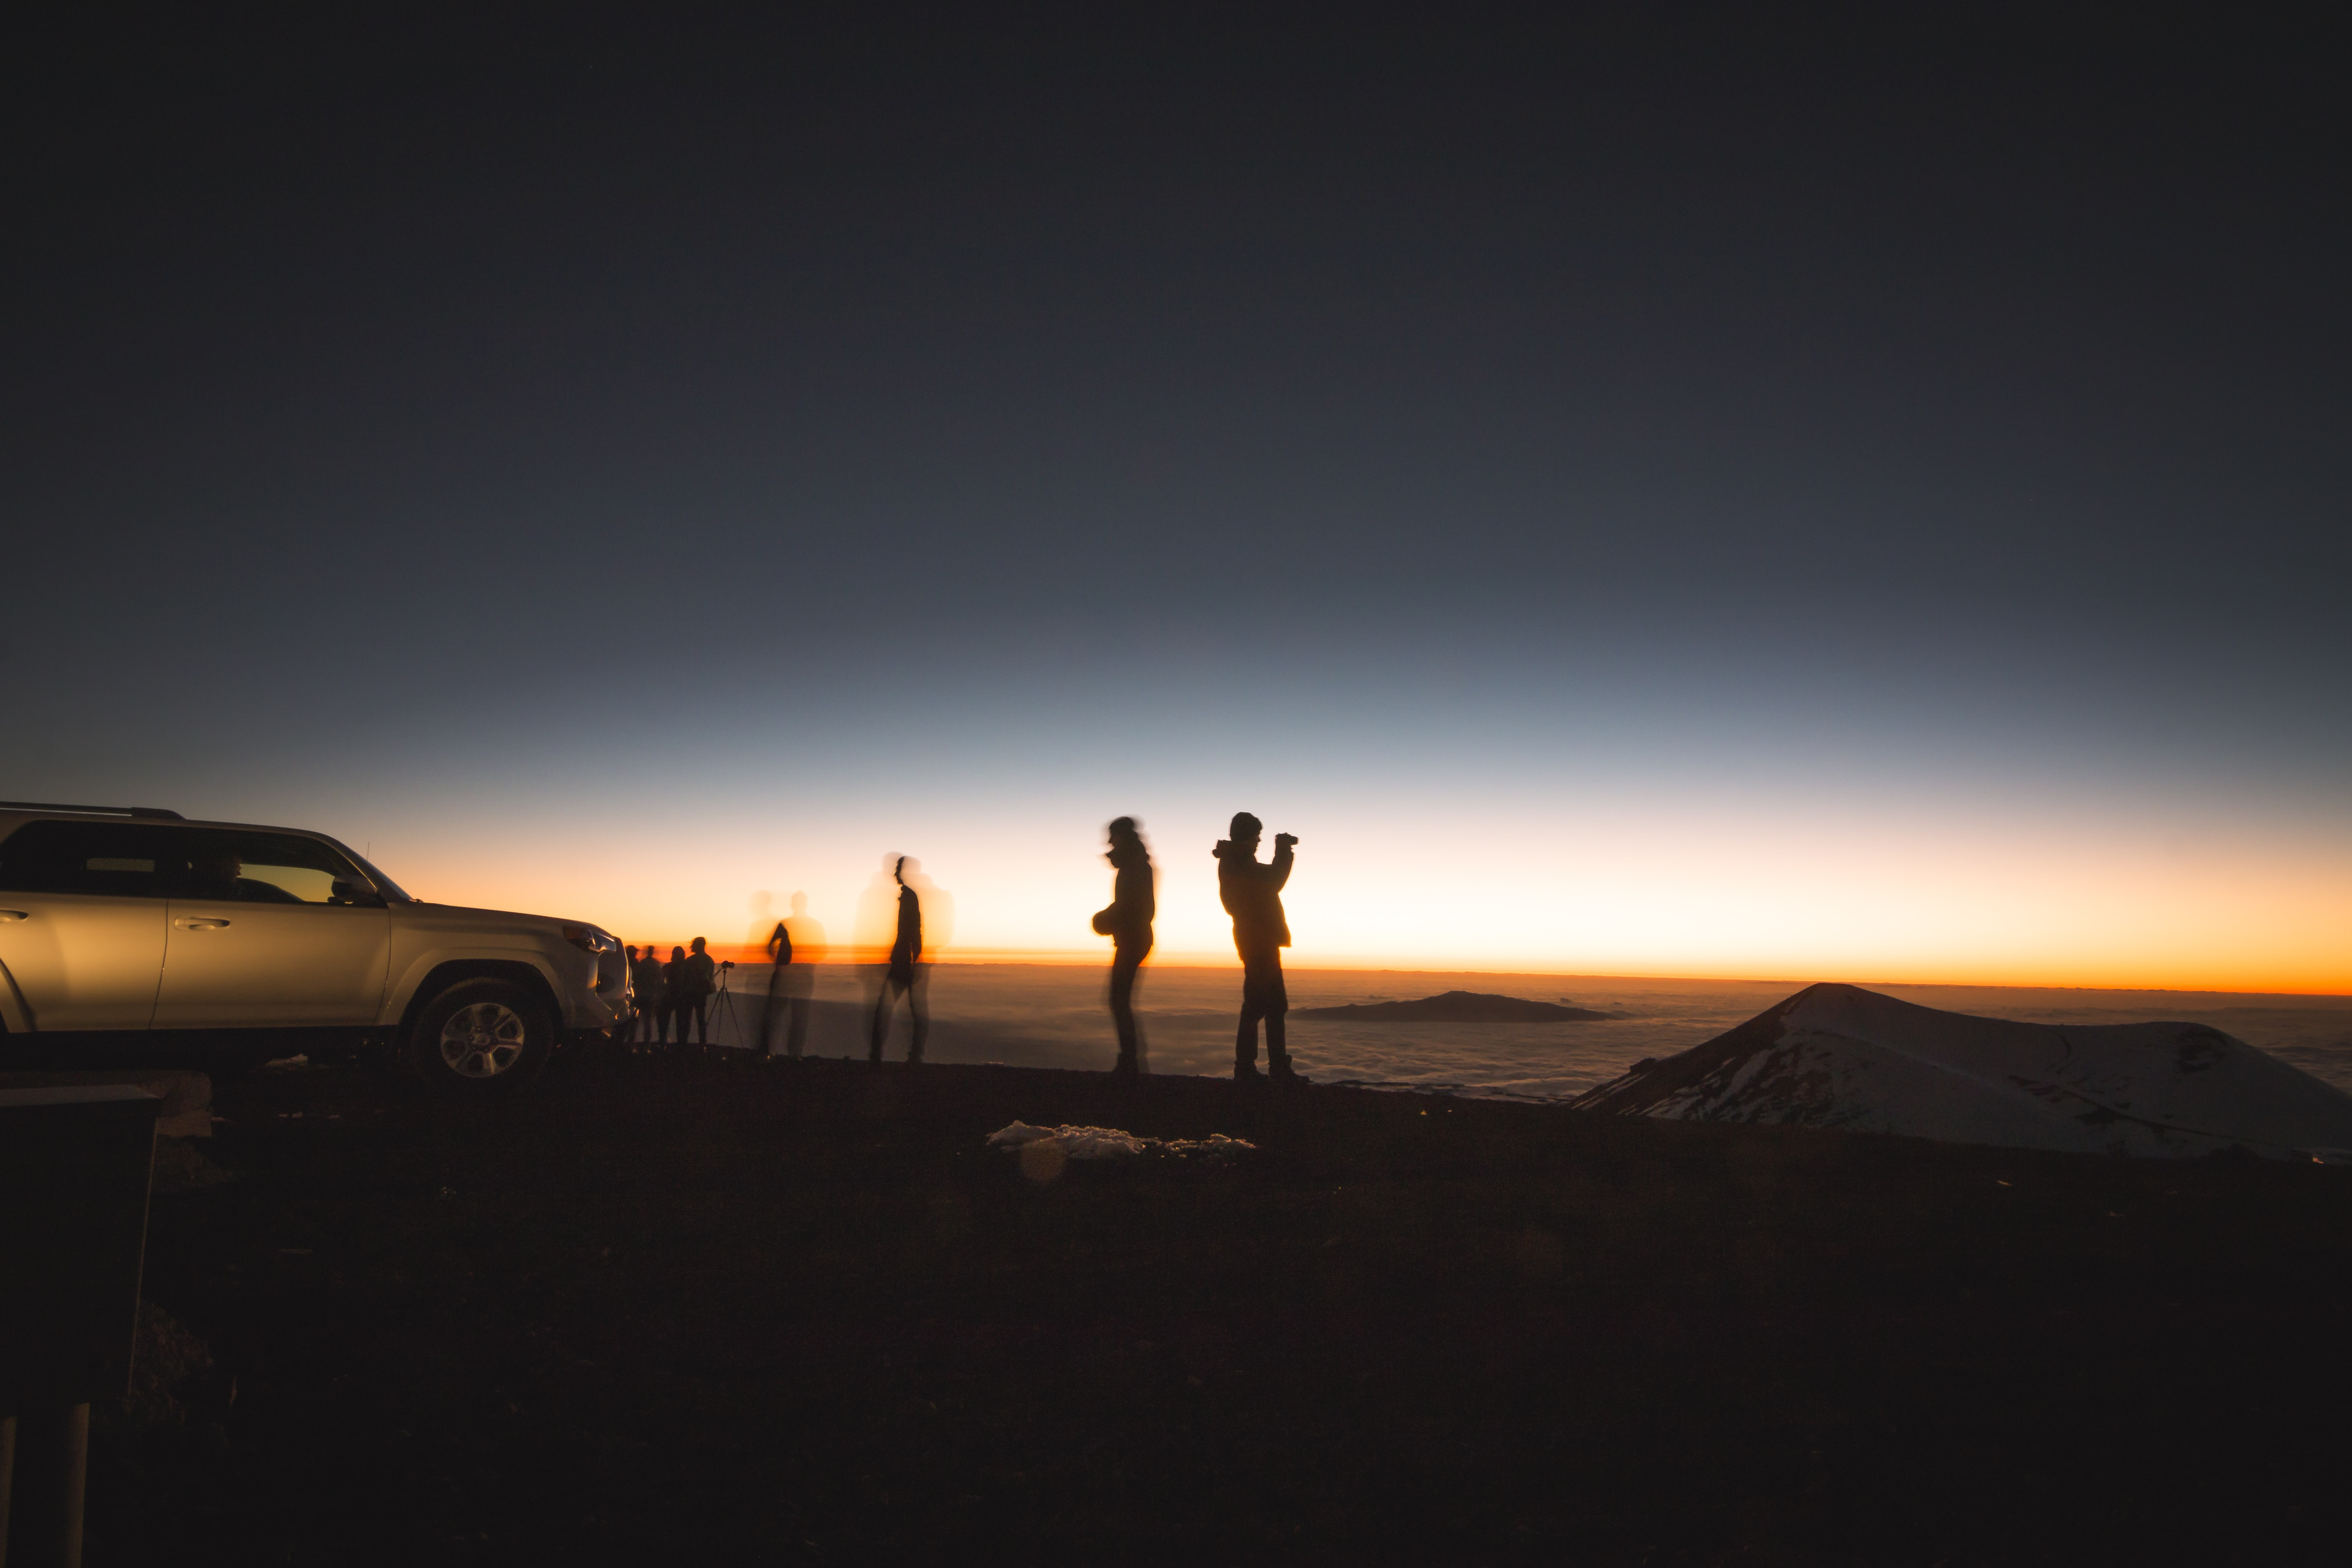 silhouette of group of people beside SUV